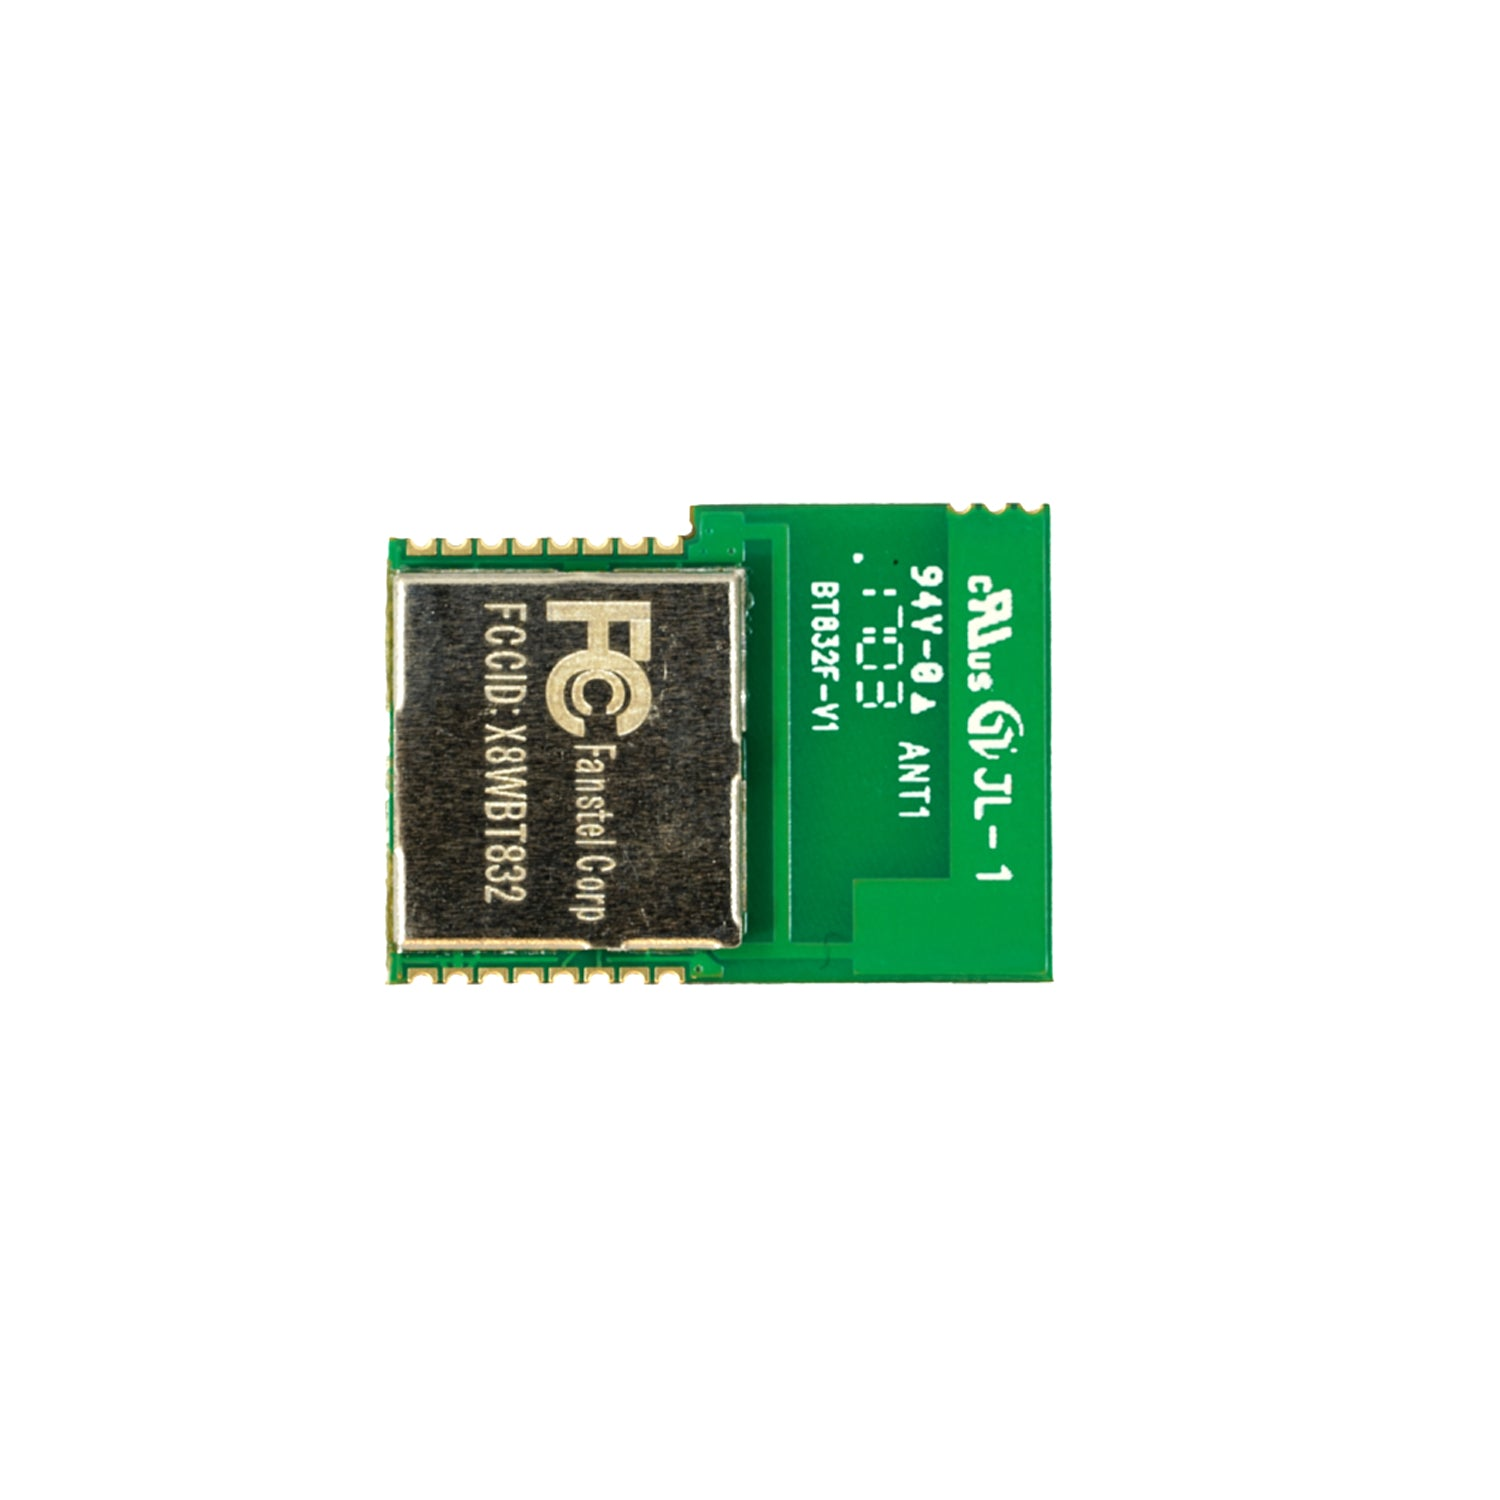 BT832F - Extended Range Bluetooth Low Energy (BLE) 5 Module